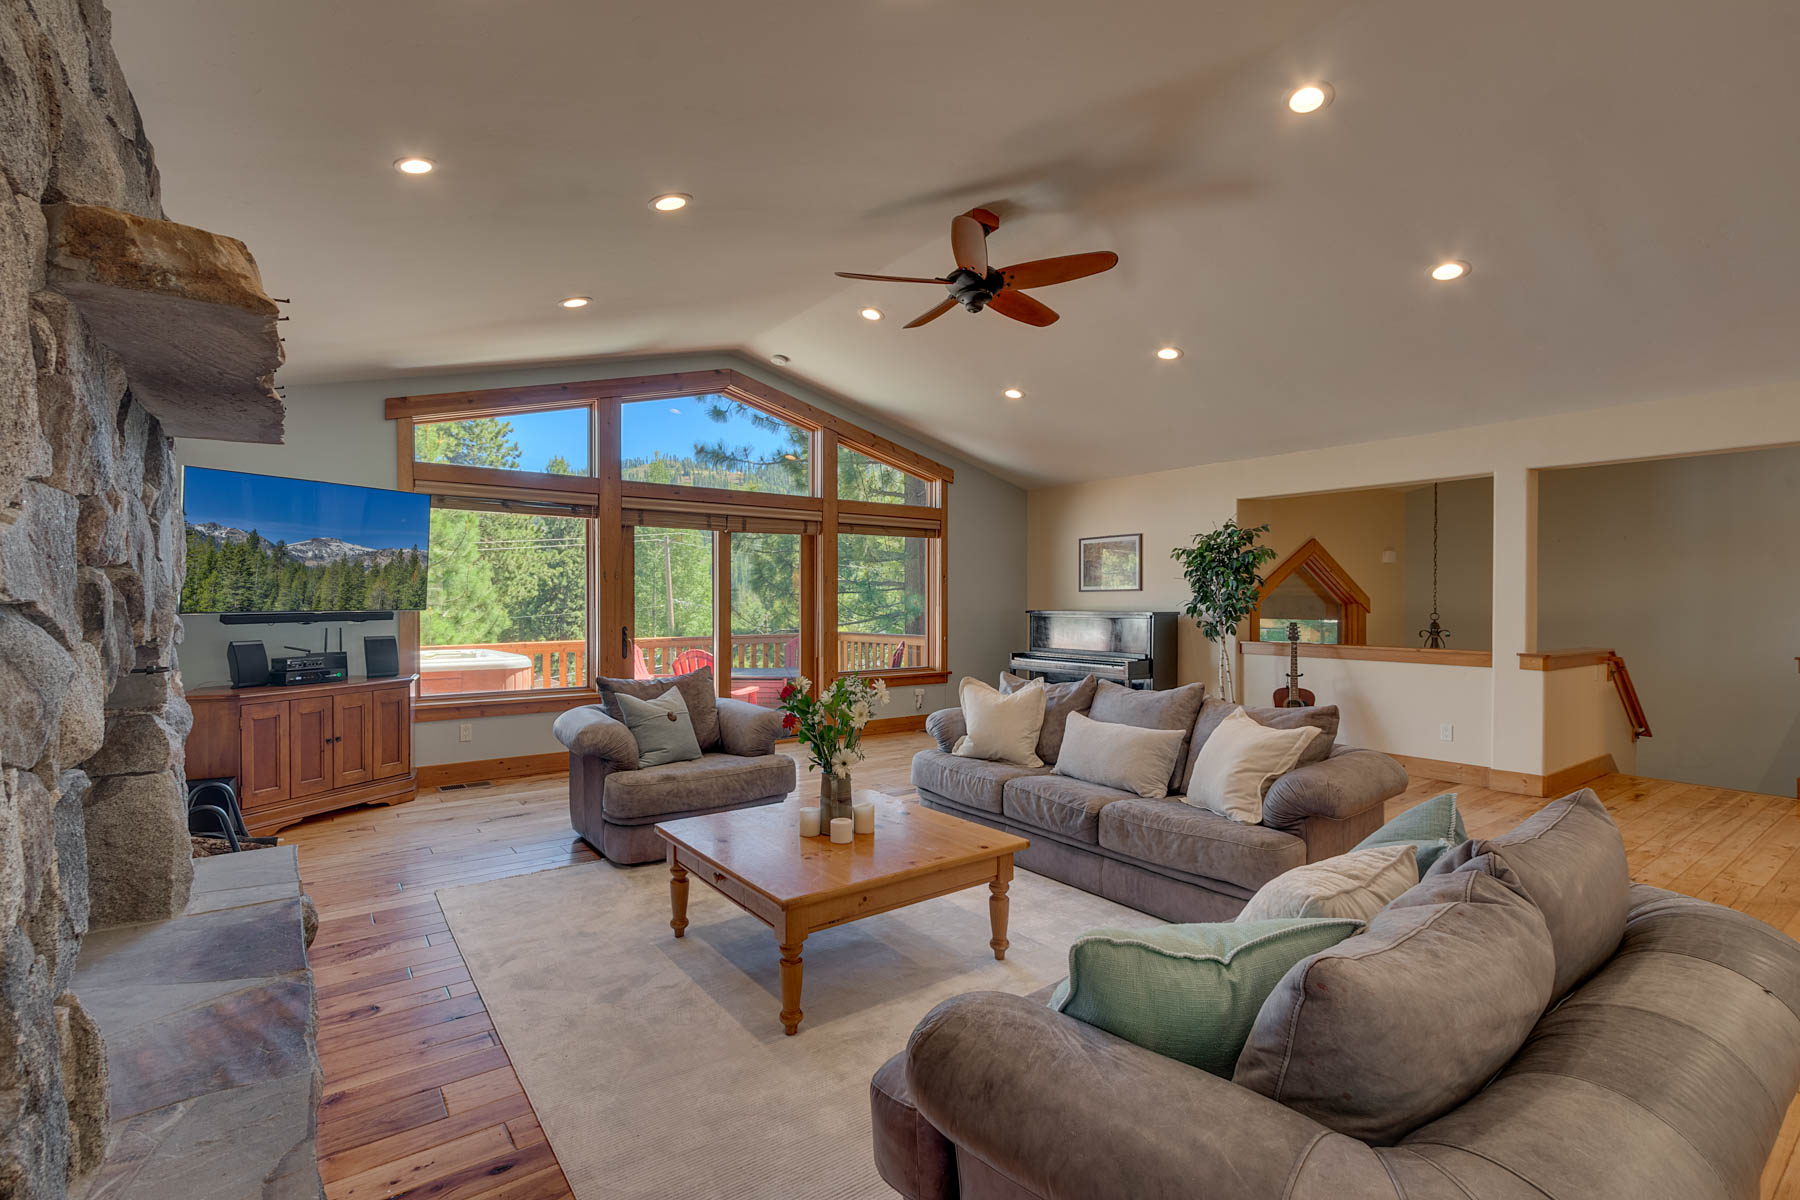 Additional photo for property listing at 1204 Lanny Lane Olympic Valley, California 96146 United States